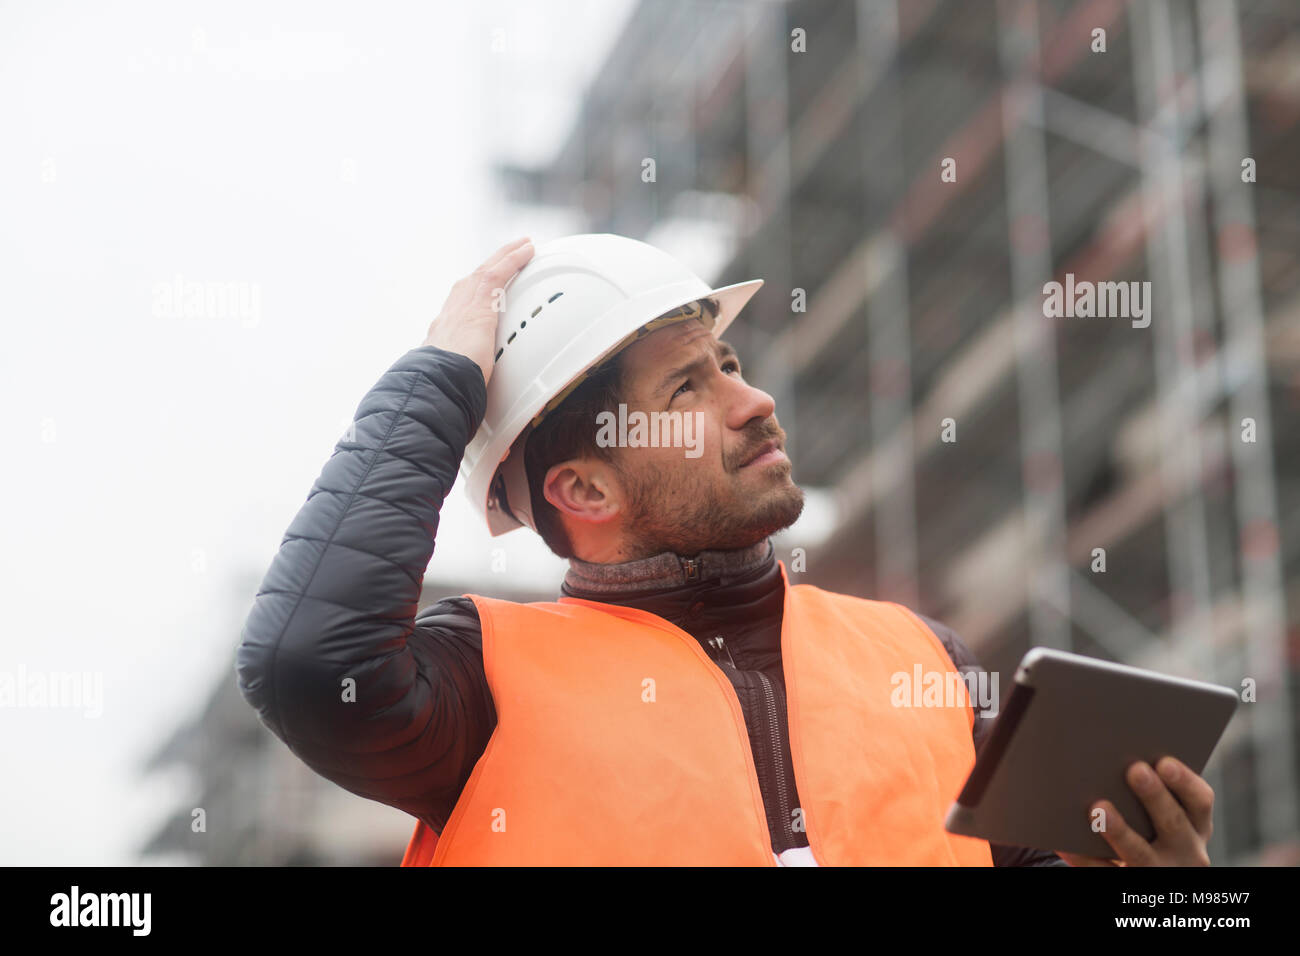 Man with tablet wearing safety vest and hard hat at construction site - Stock Image